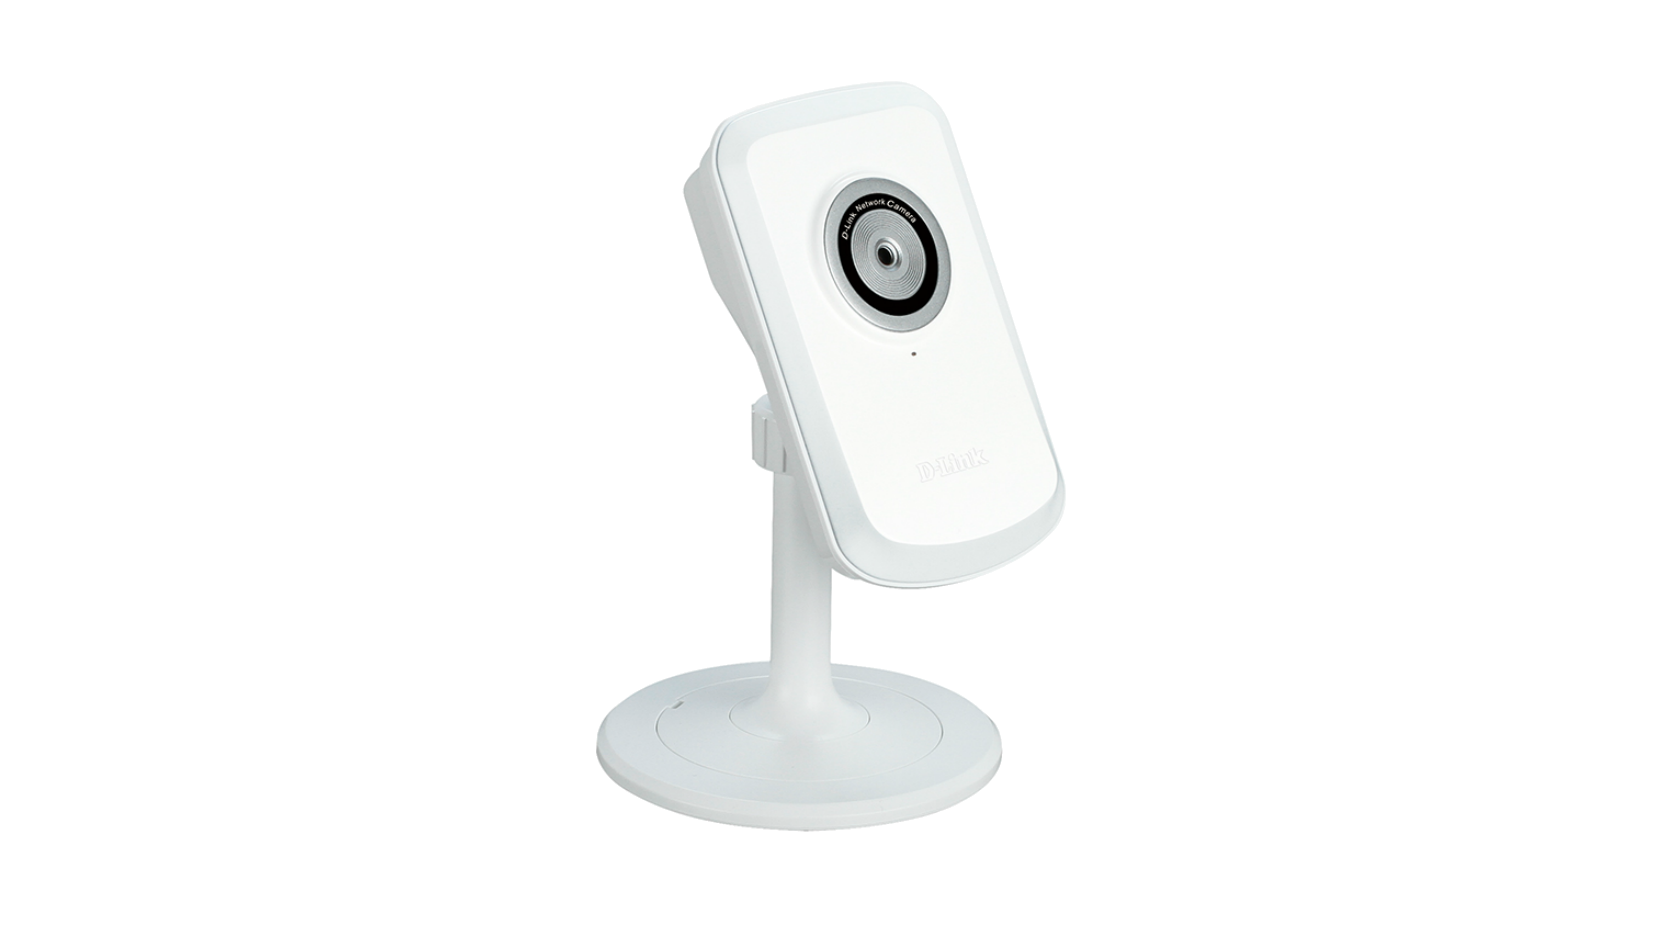 D-Link Wireless N Home Network Cloud Camera mydlink enabled DCS-930L